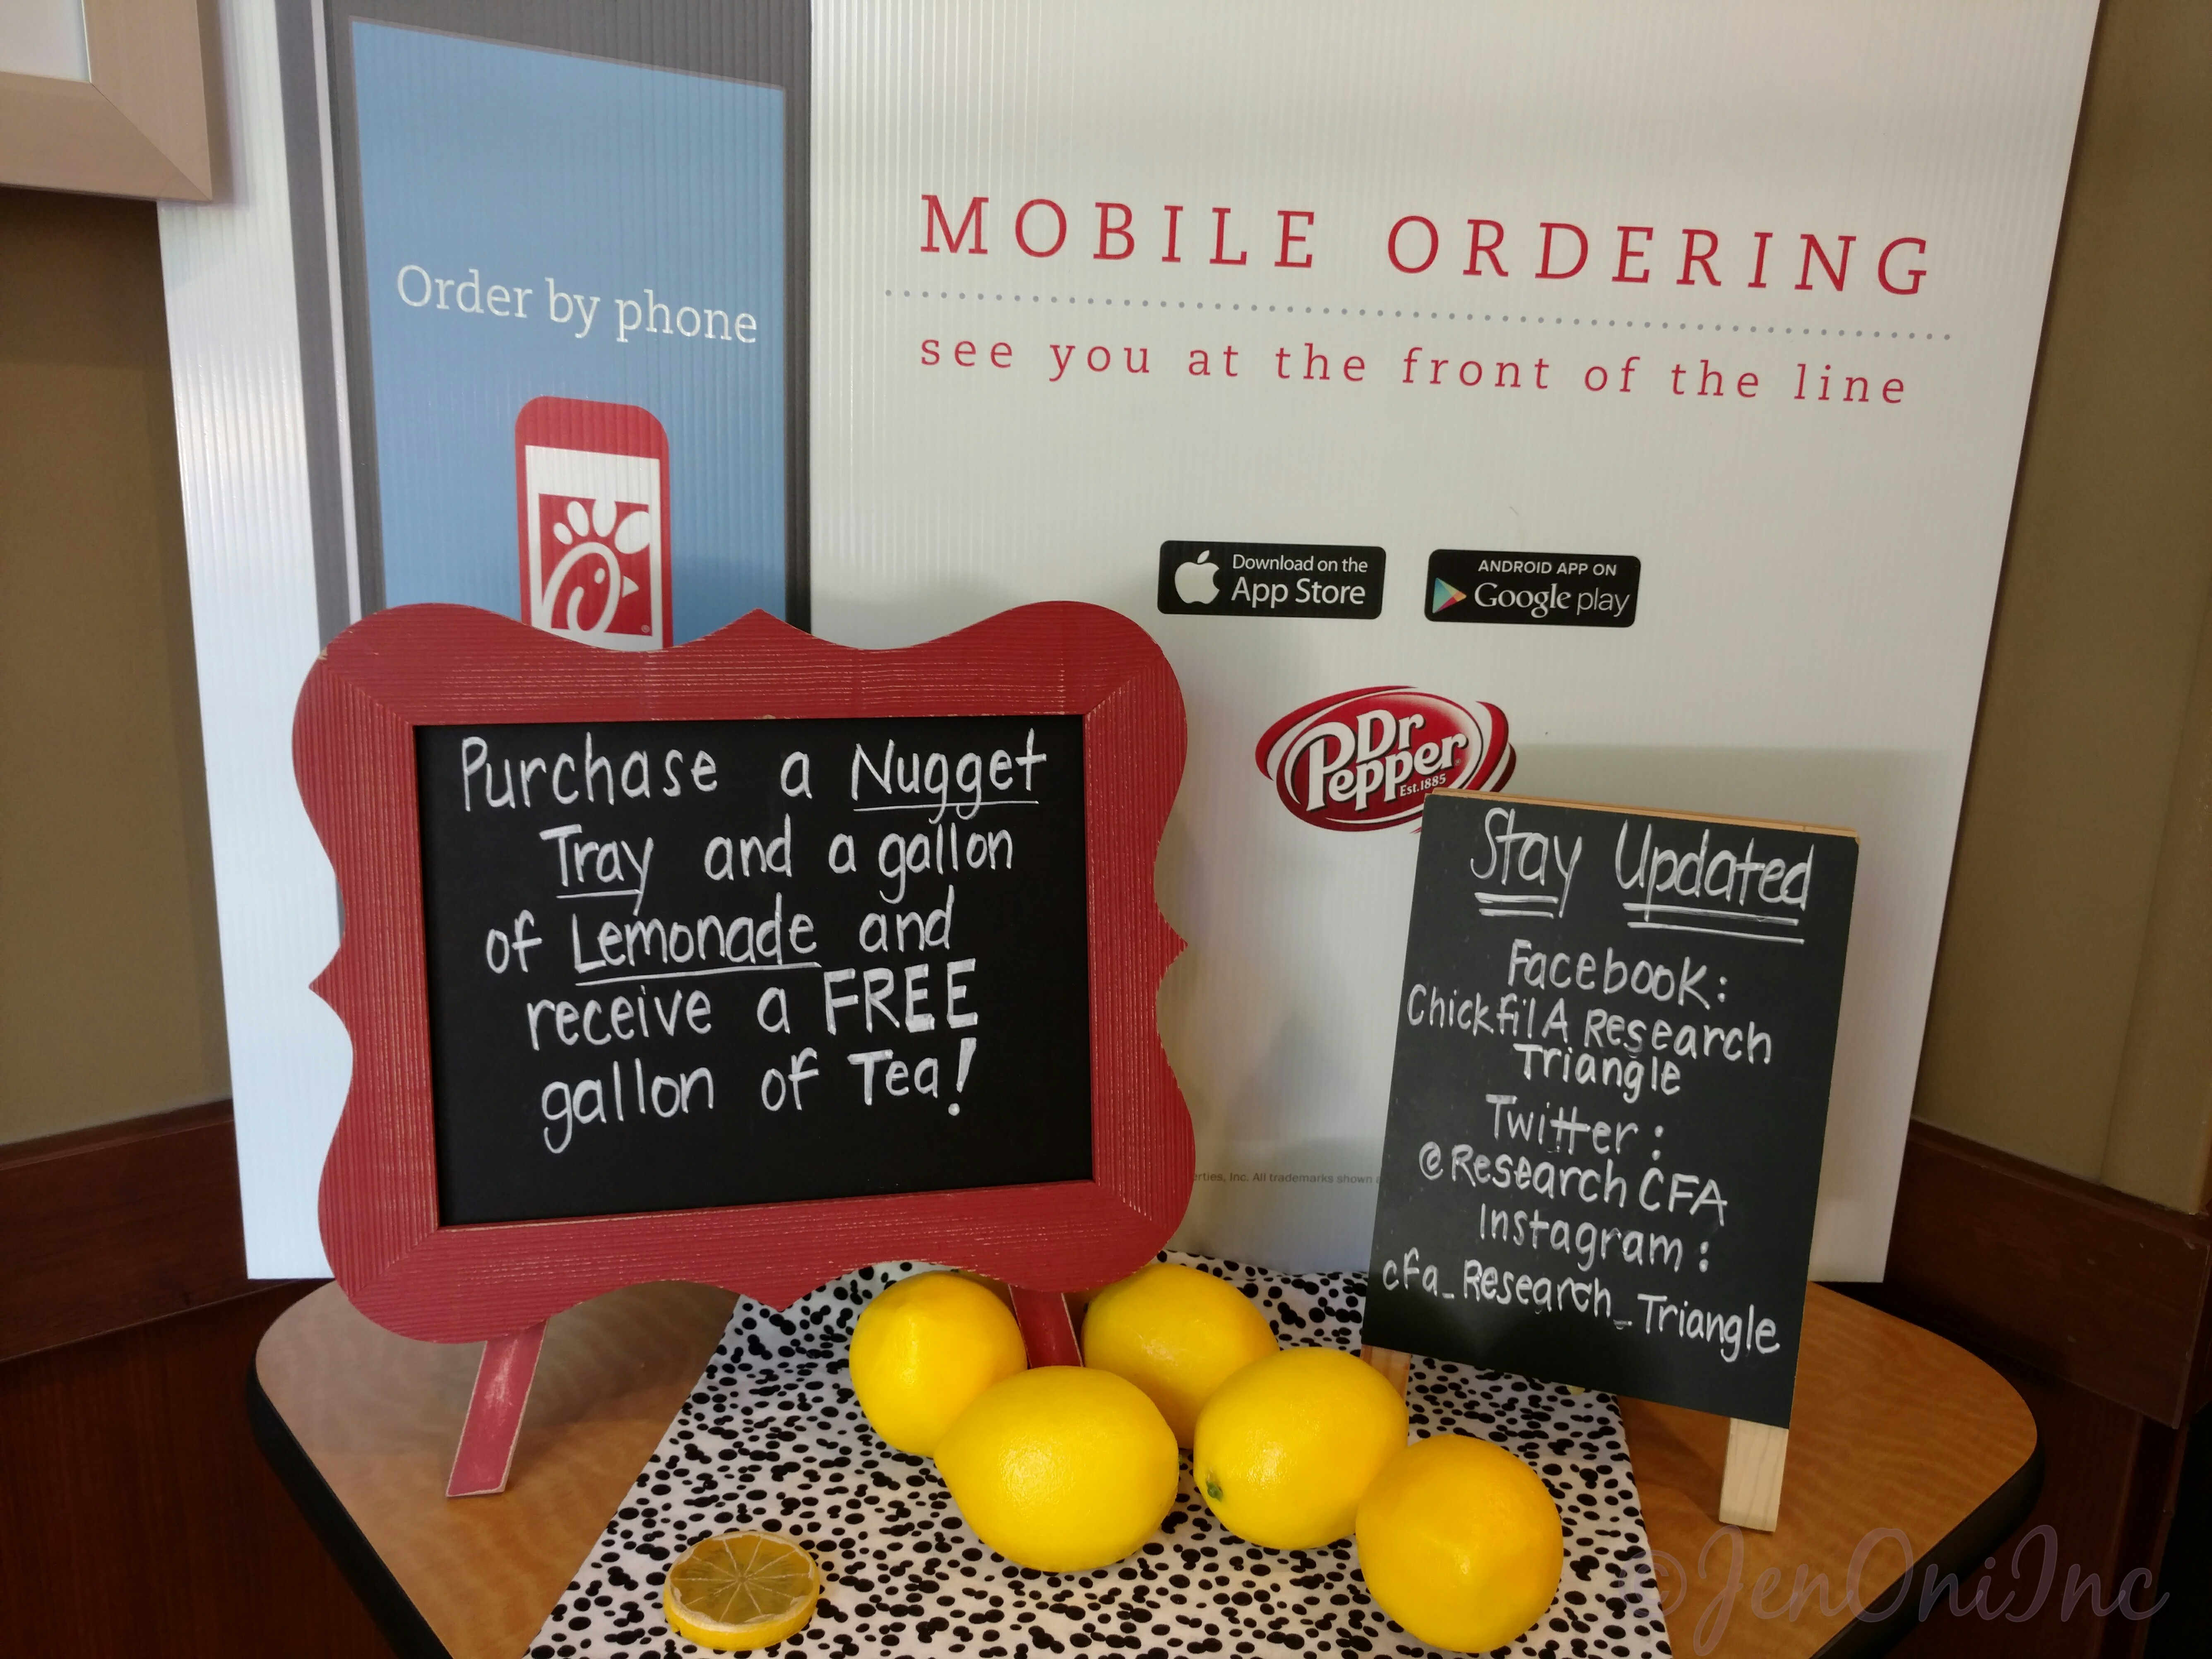 Chick-Fil-A Mobile Ordering